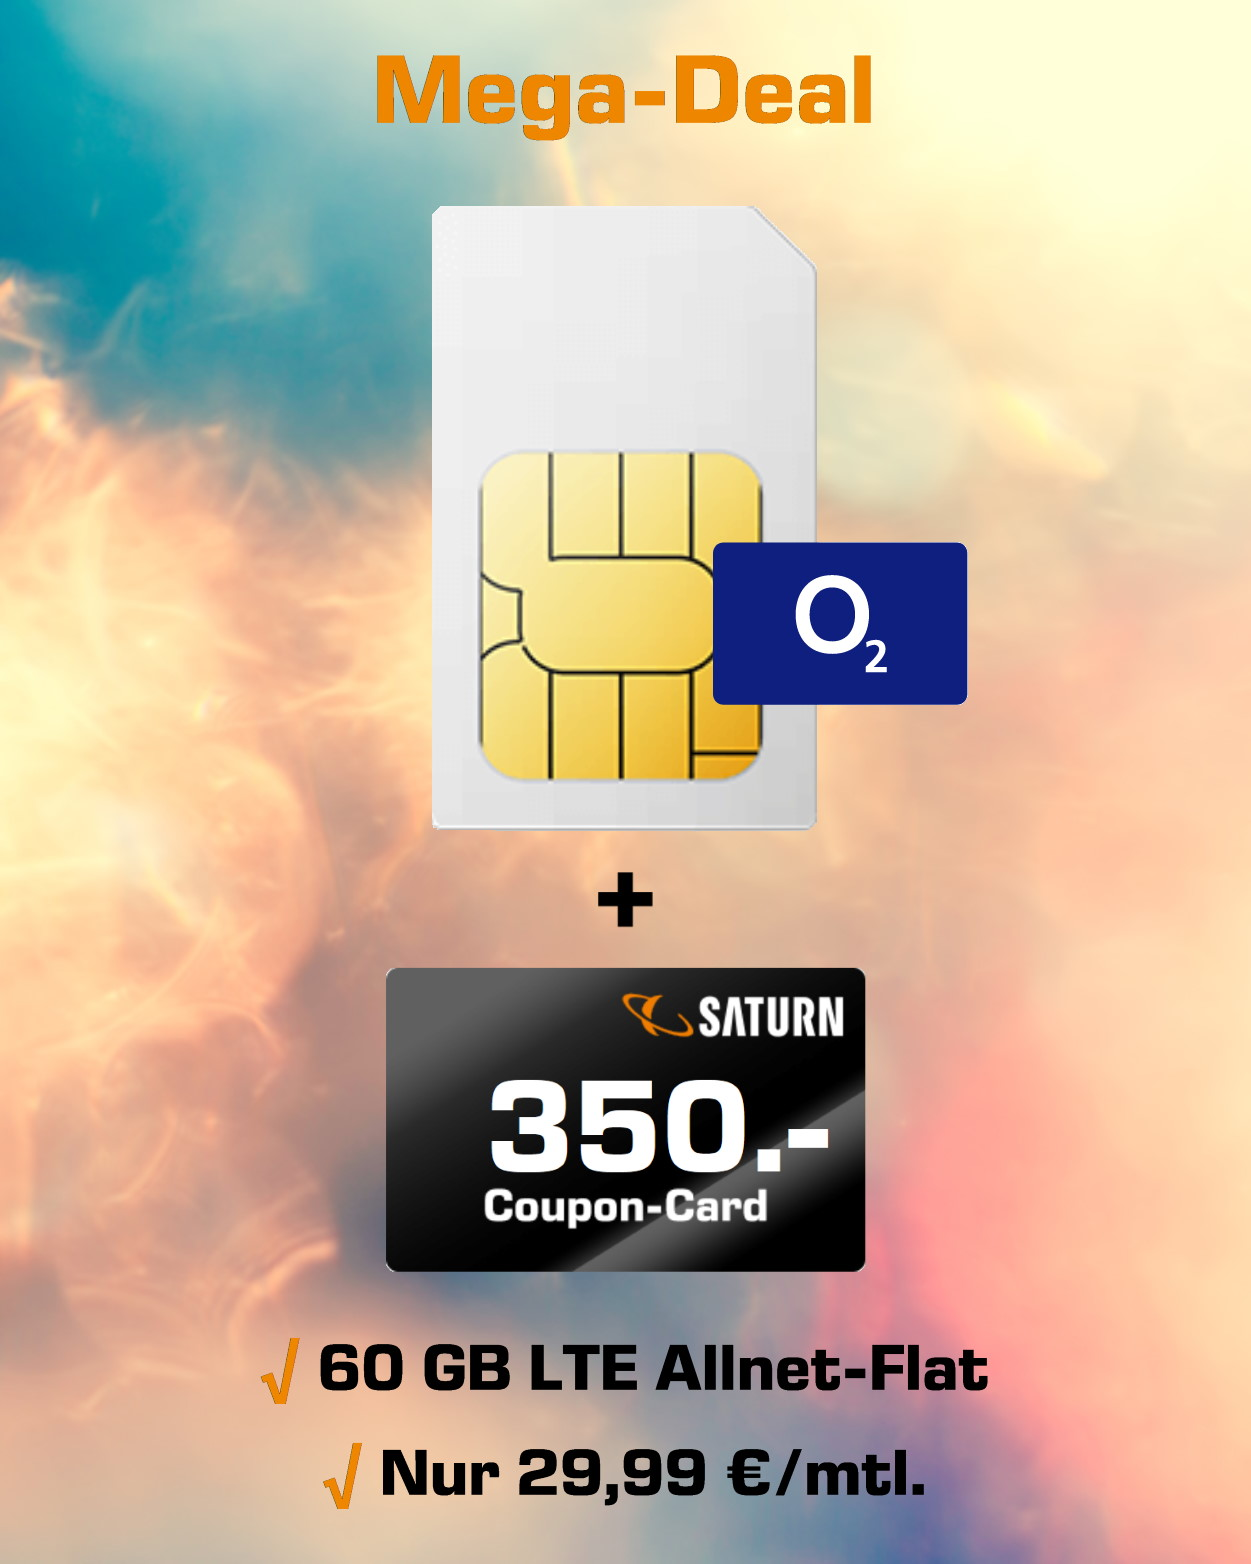 60 GB LTE Allnet-Flat mit 350 Euro Saturn-Coupon zum Sensationspreis